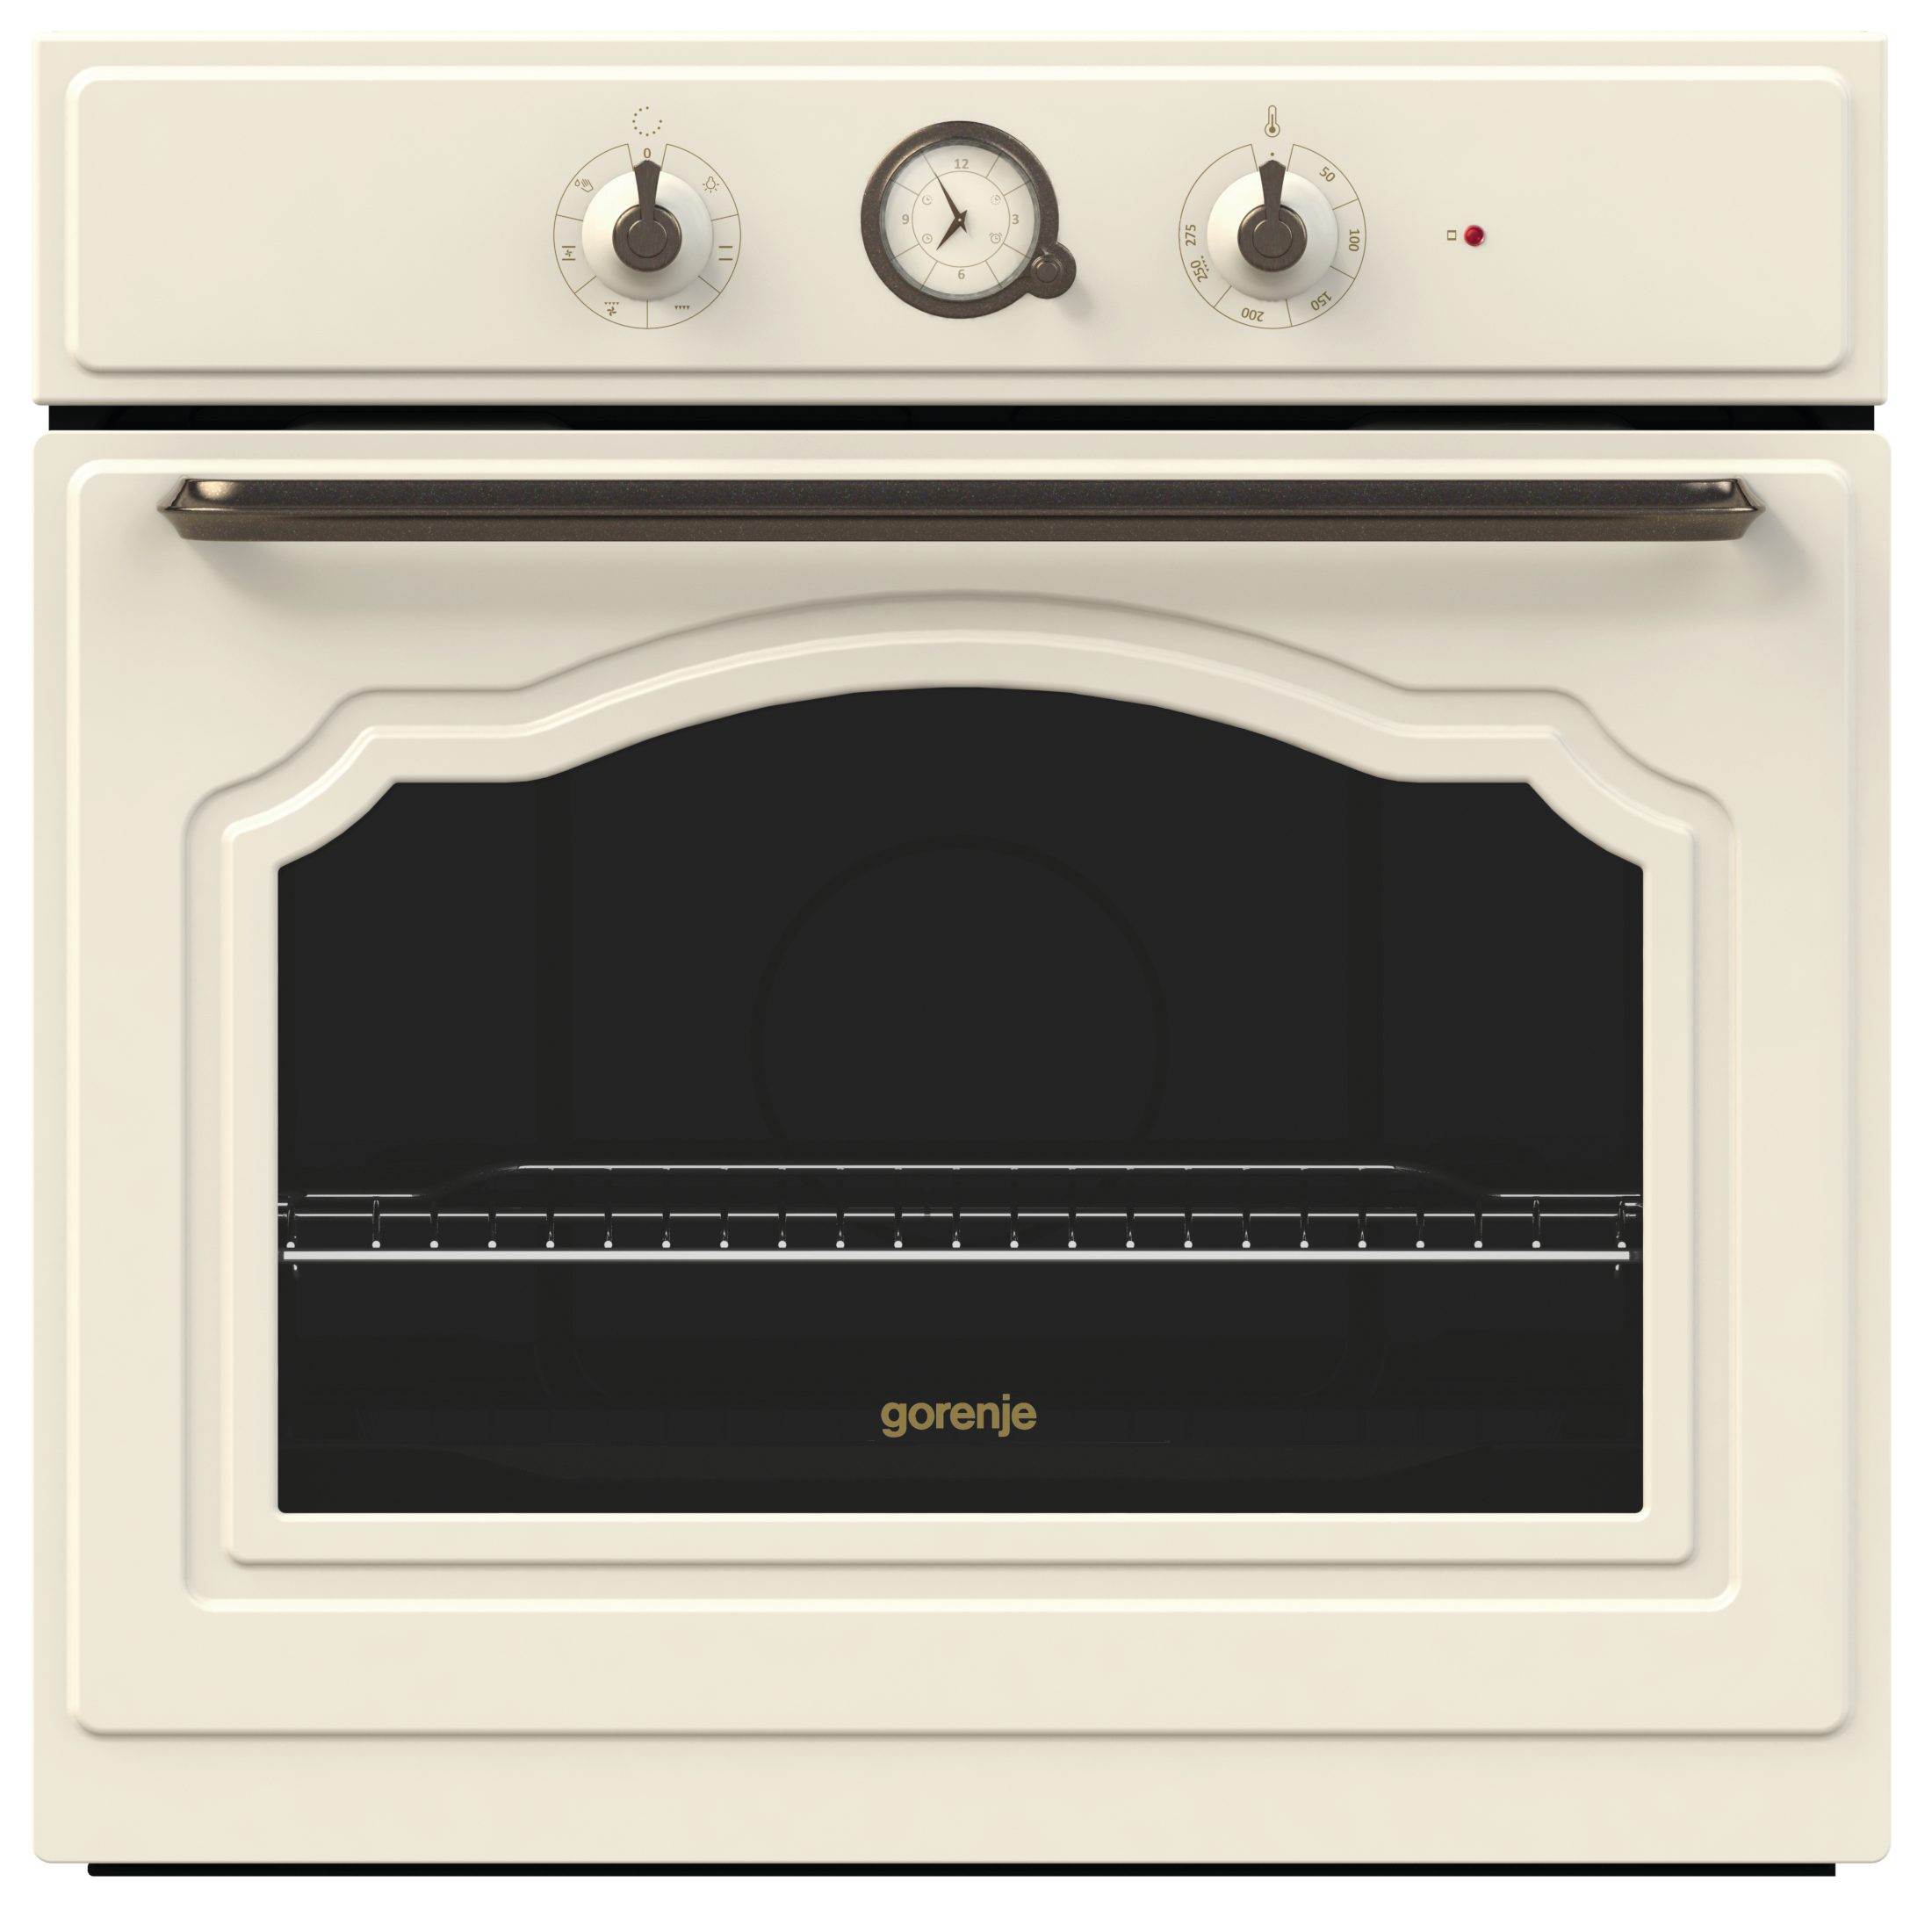 Gorenje backofen retro